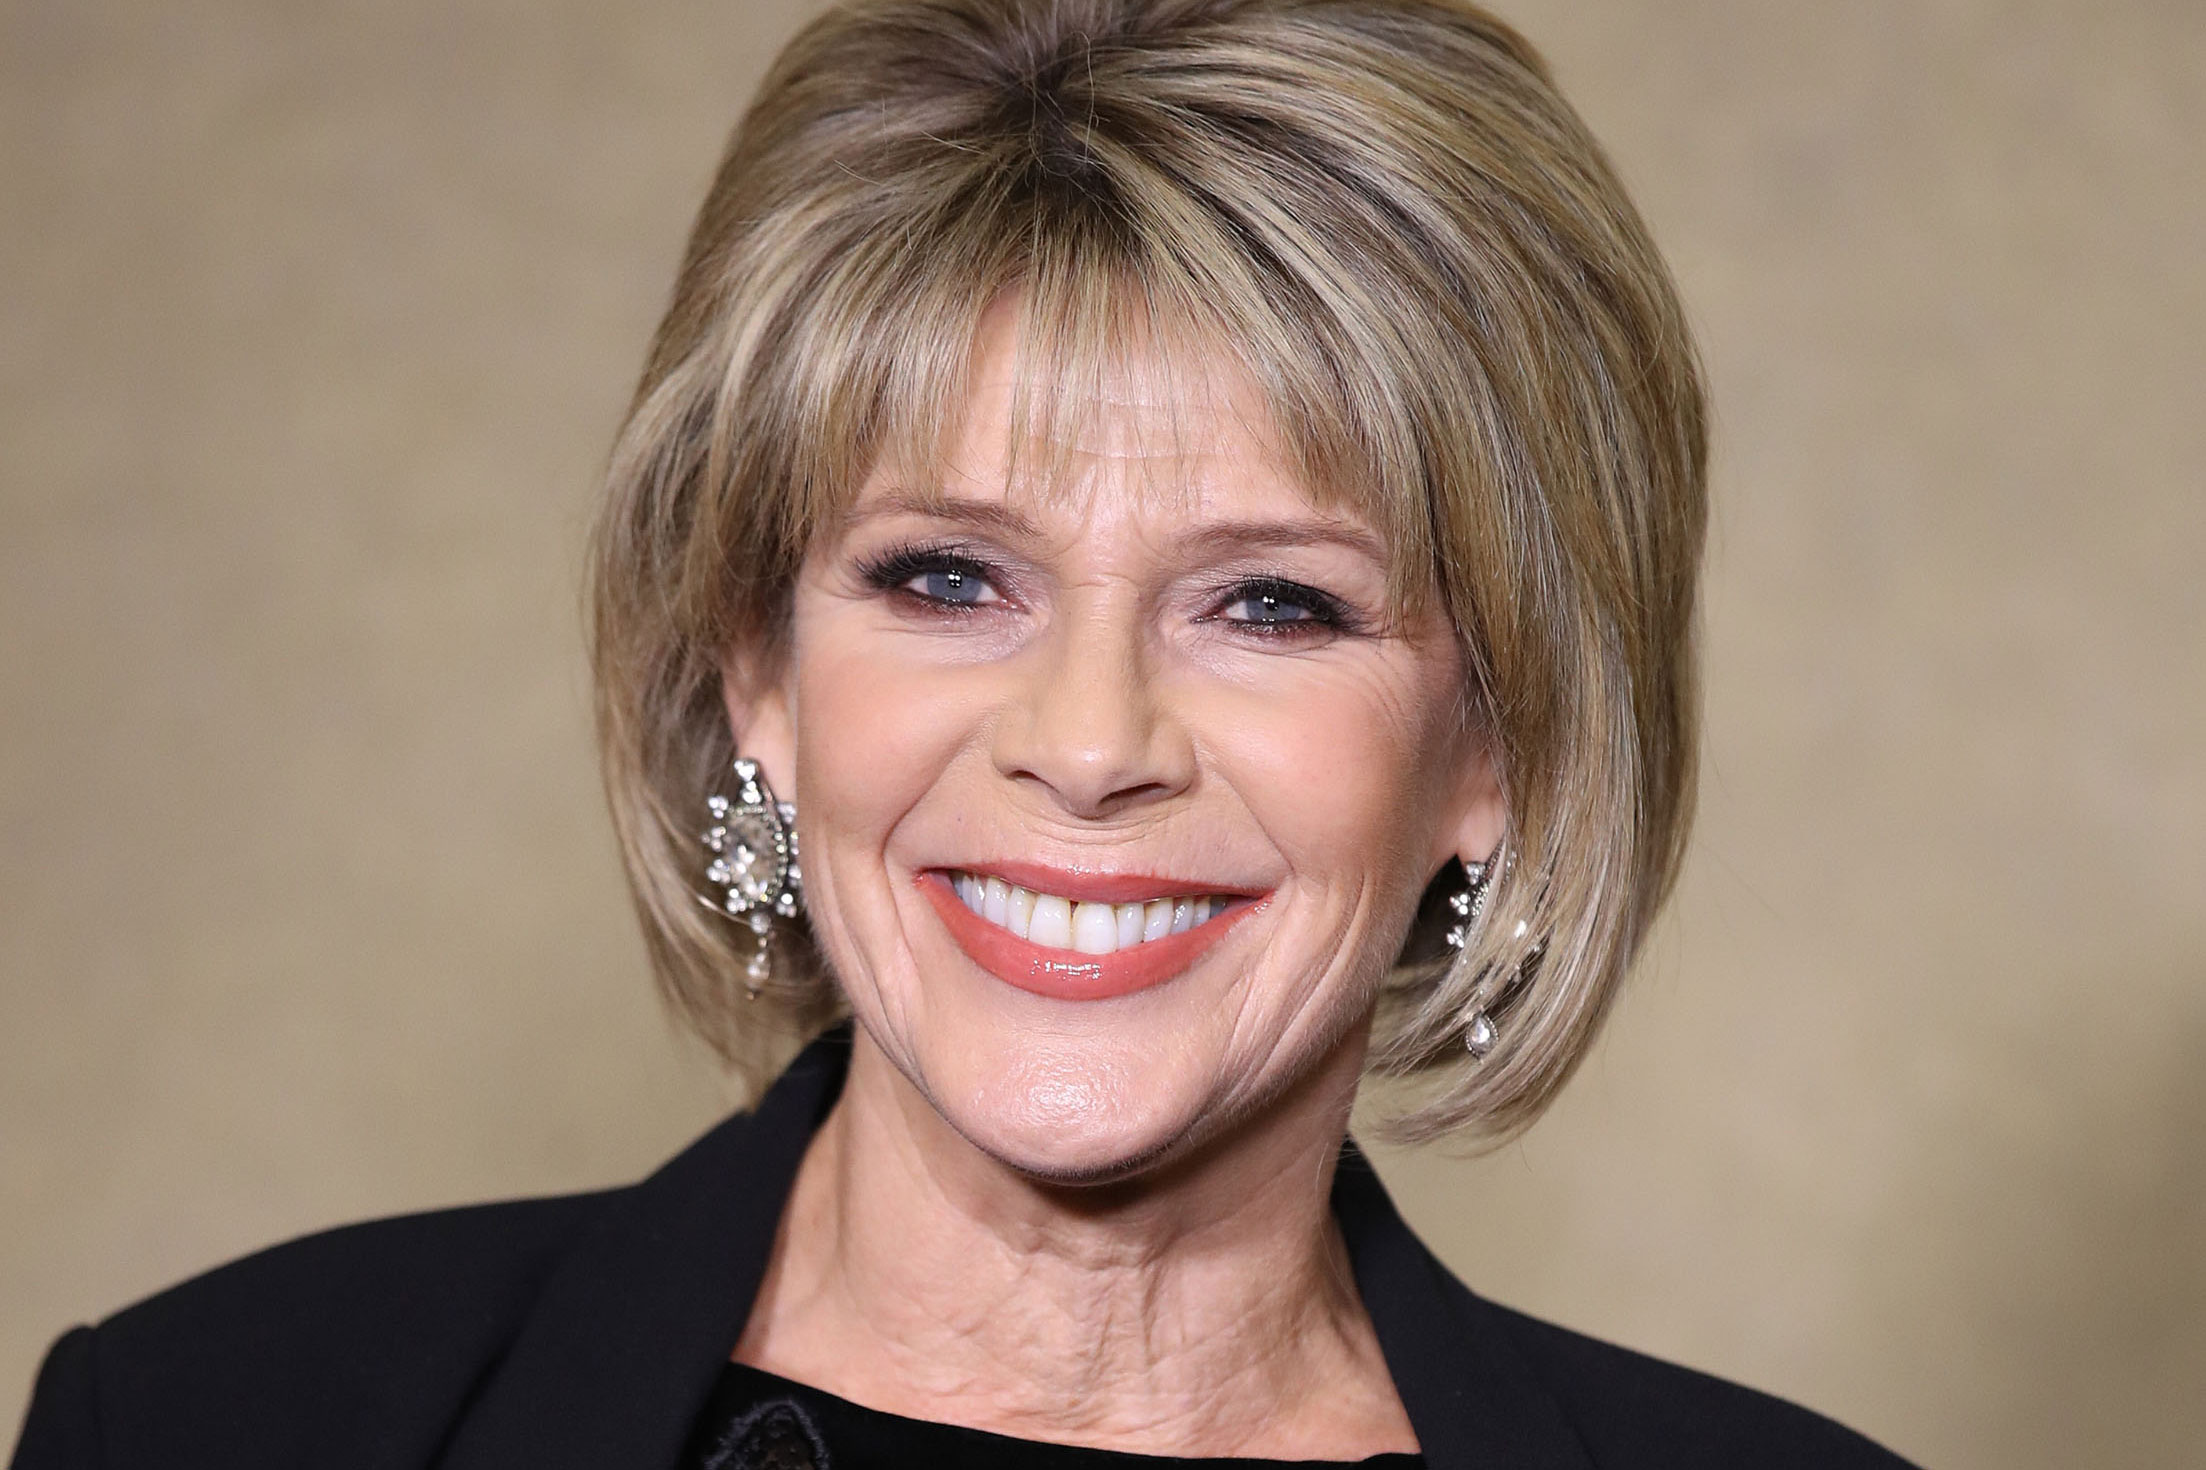 Ruth Langsford reveals the £3 product she uses to keep her blonde hair flawless in lockdown